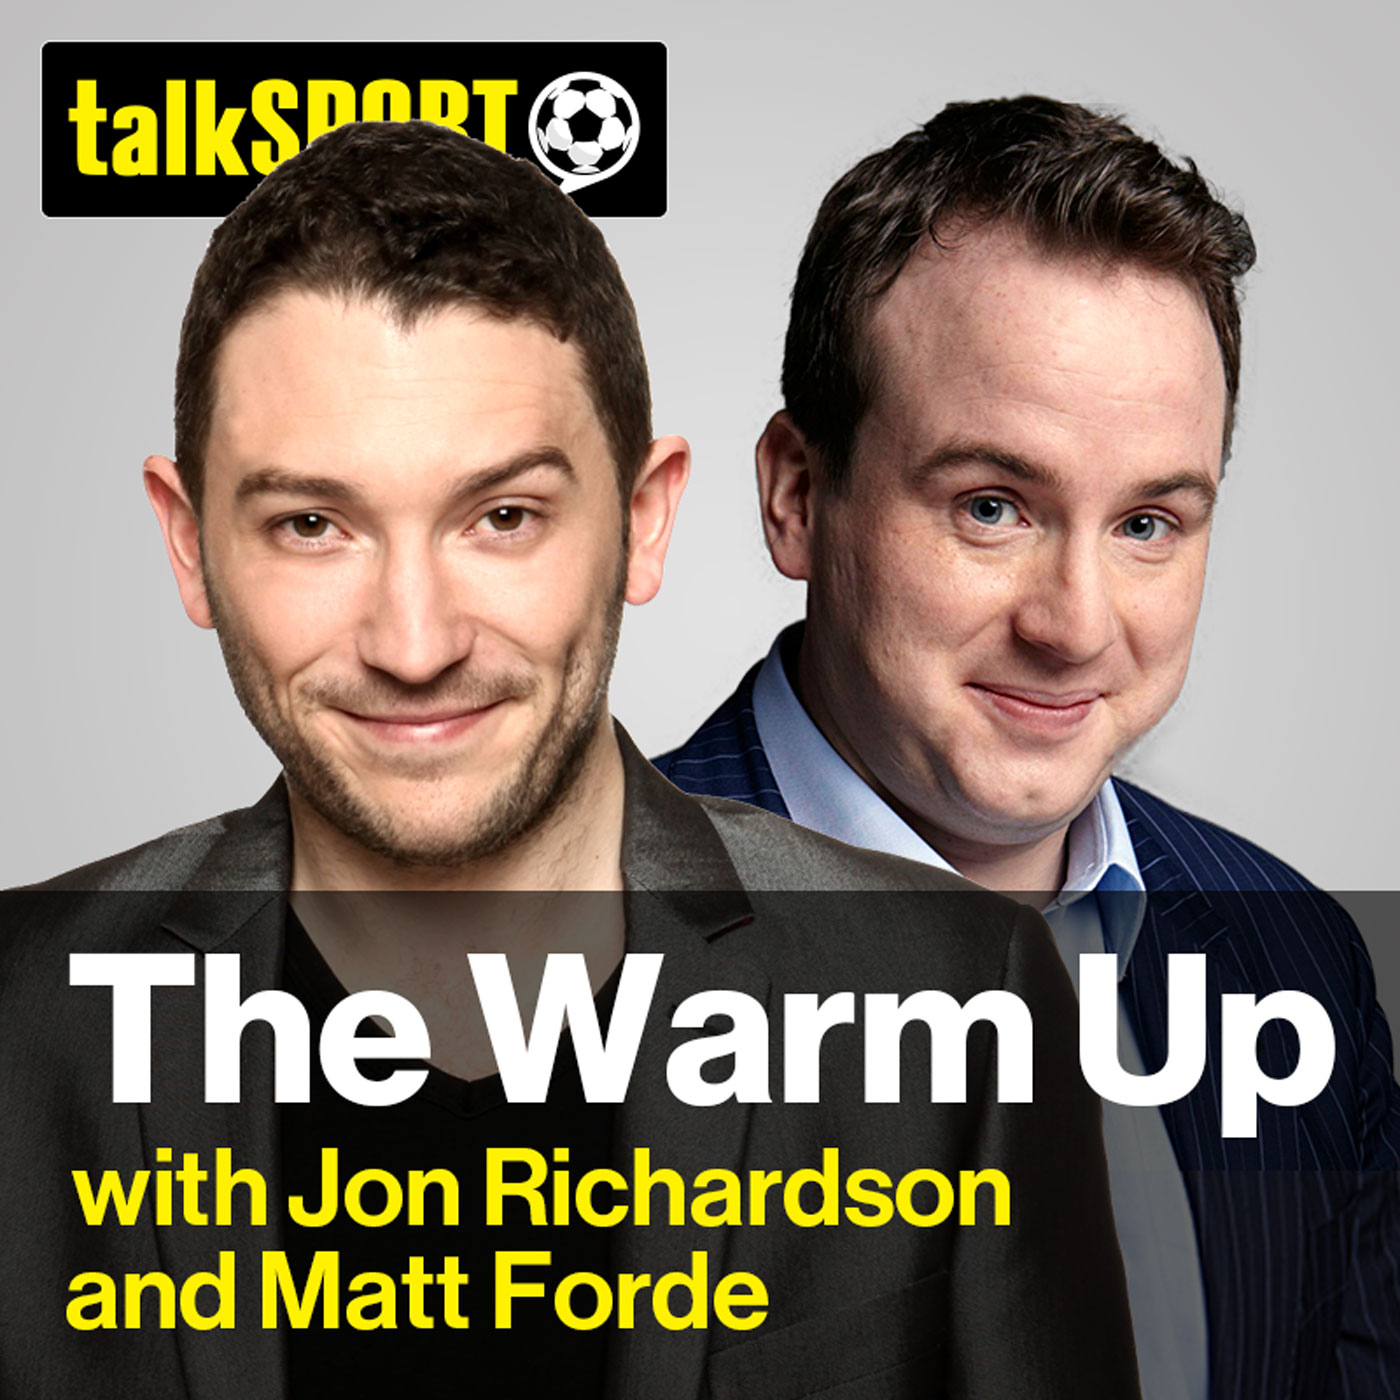 The Warm Up with Jon Richardson and Matt Forde